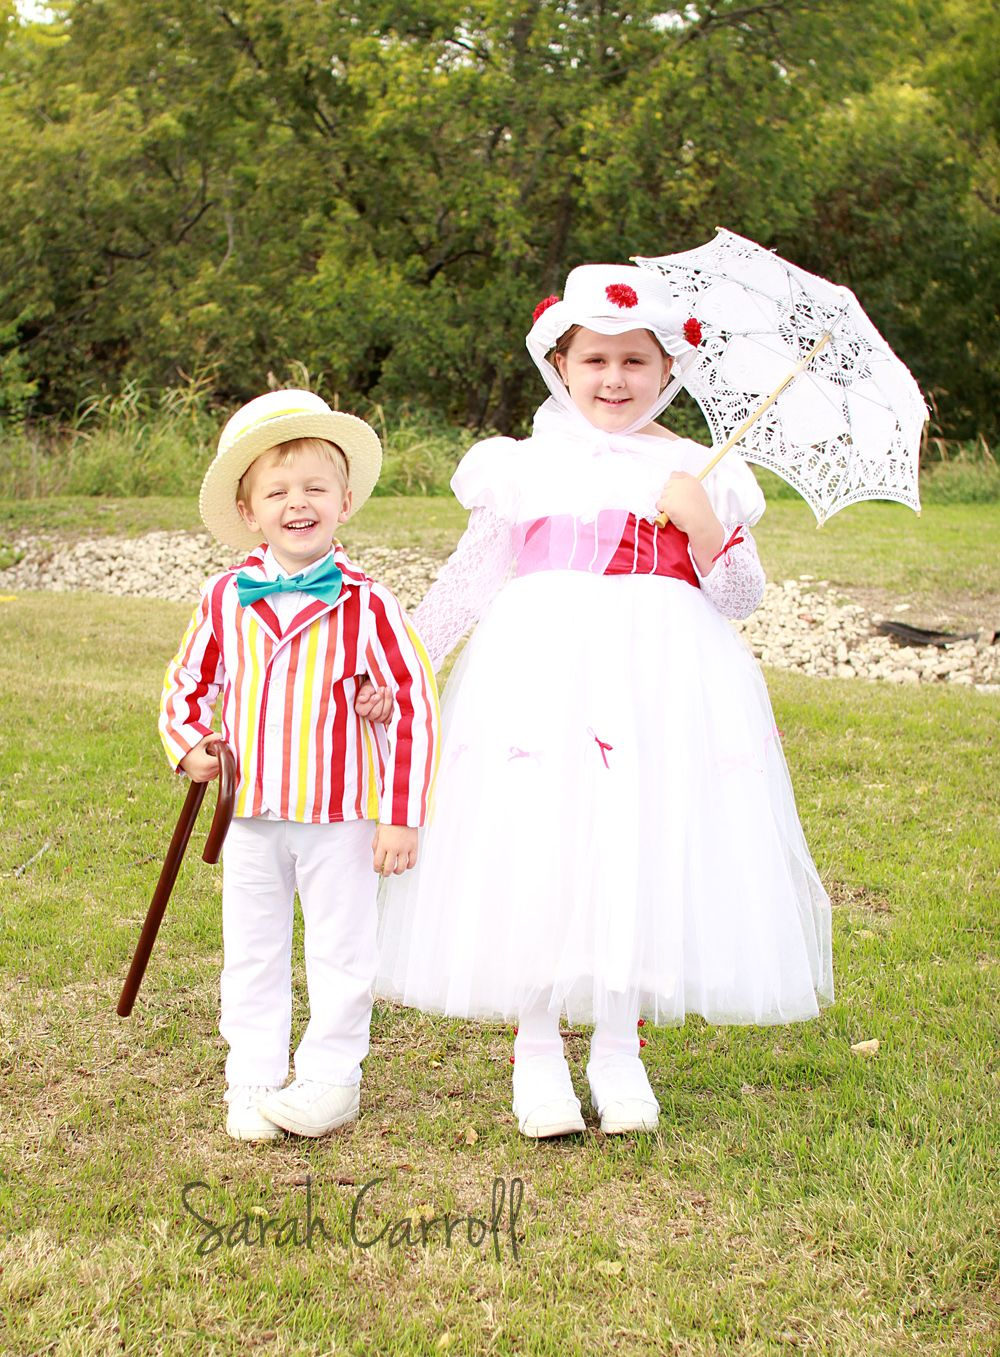 Brother & sister costumes - Mary Poppins & Bert chalk drawing costumes - kid costumes